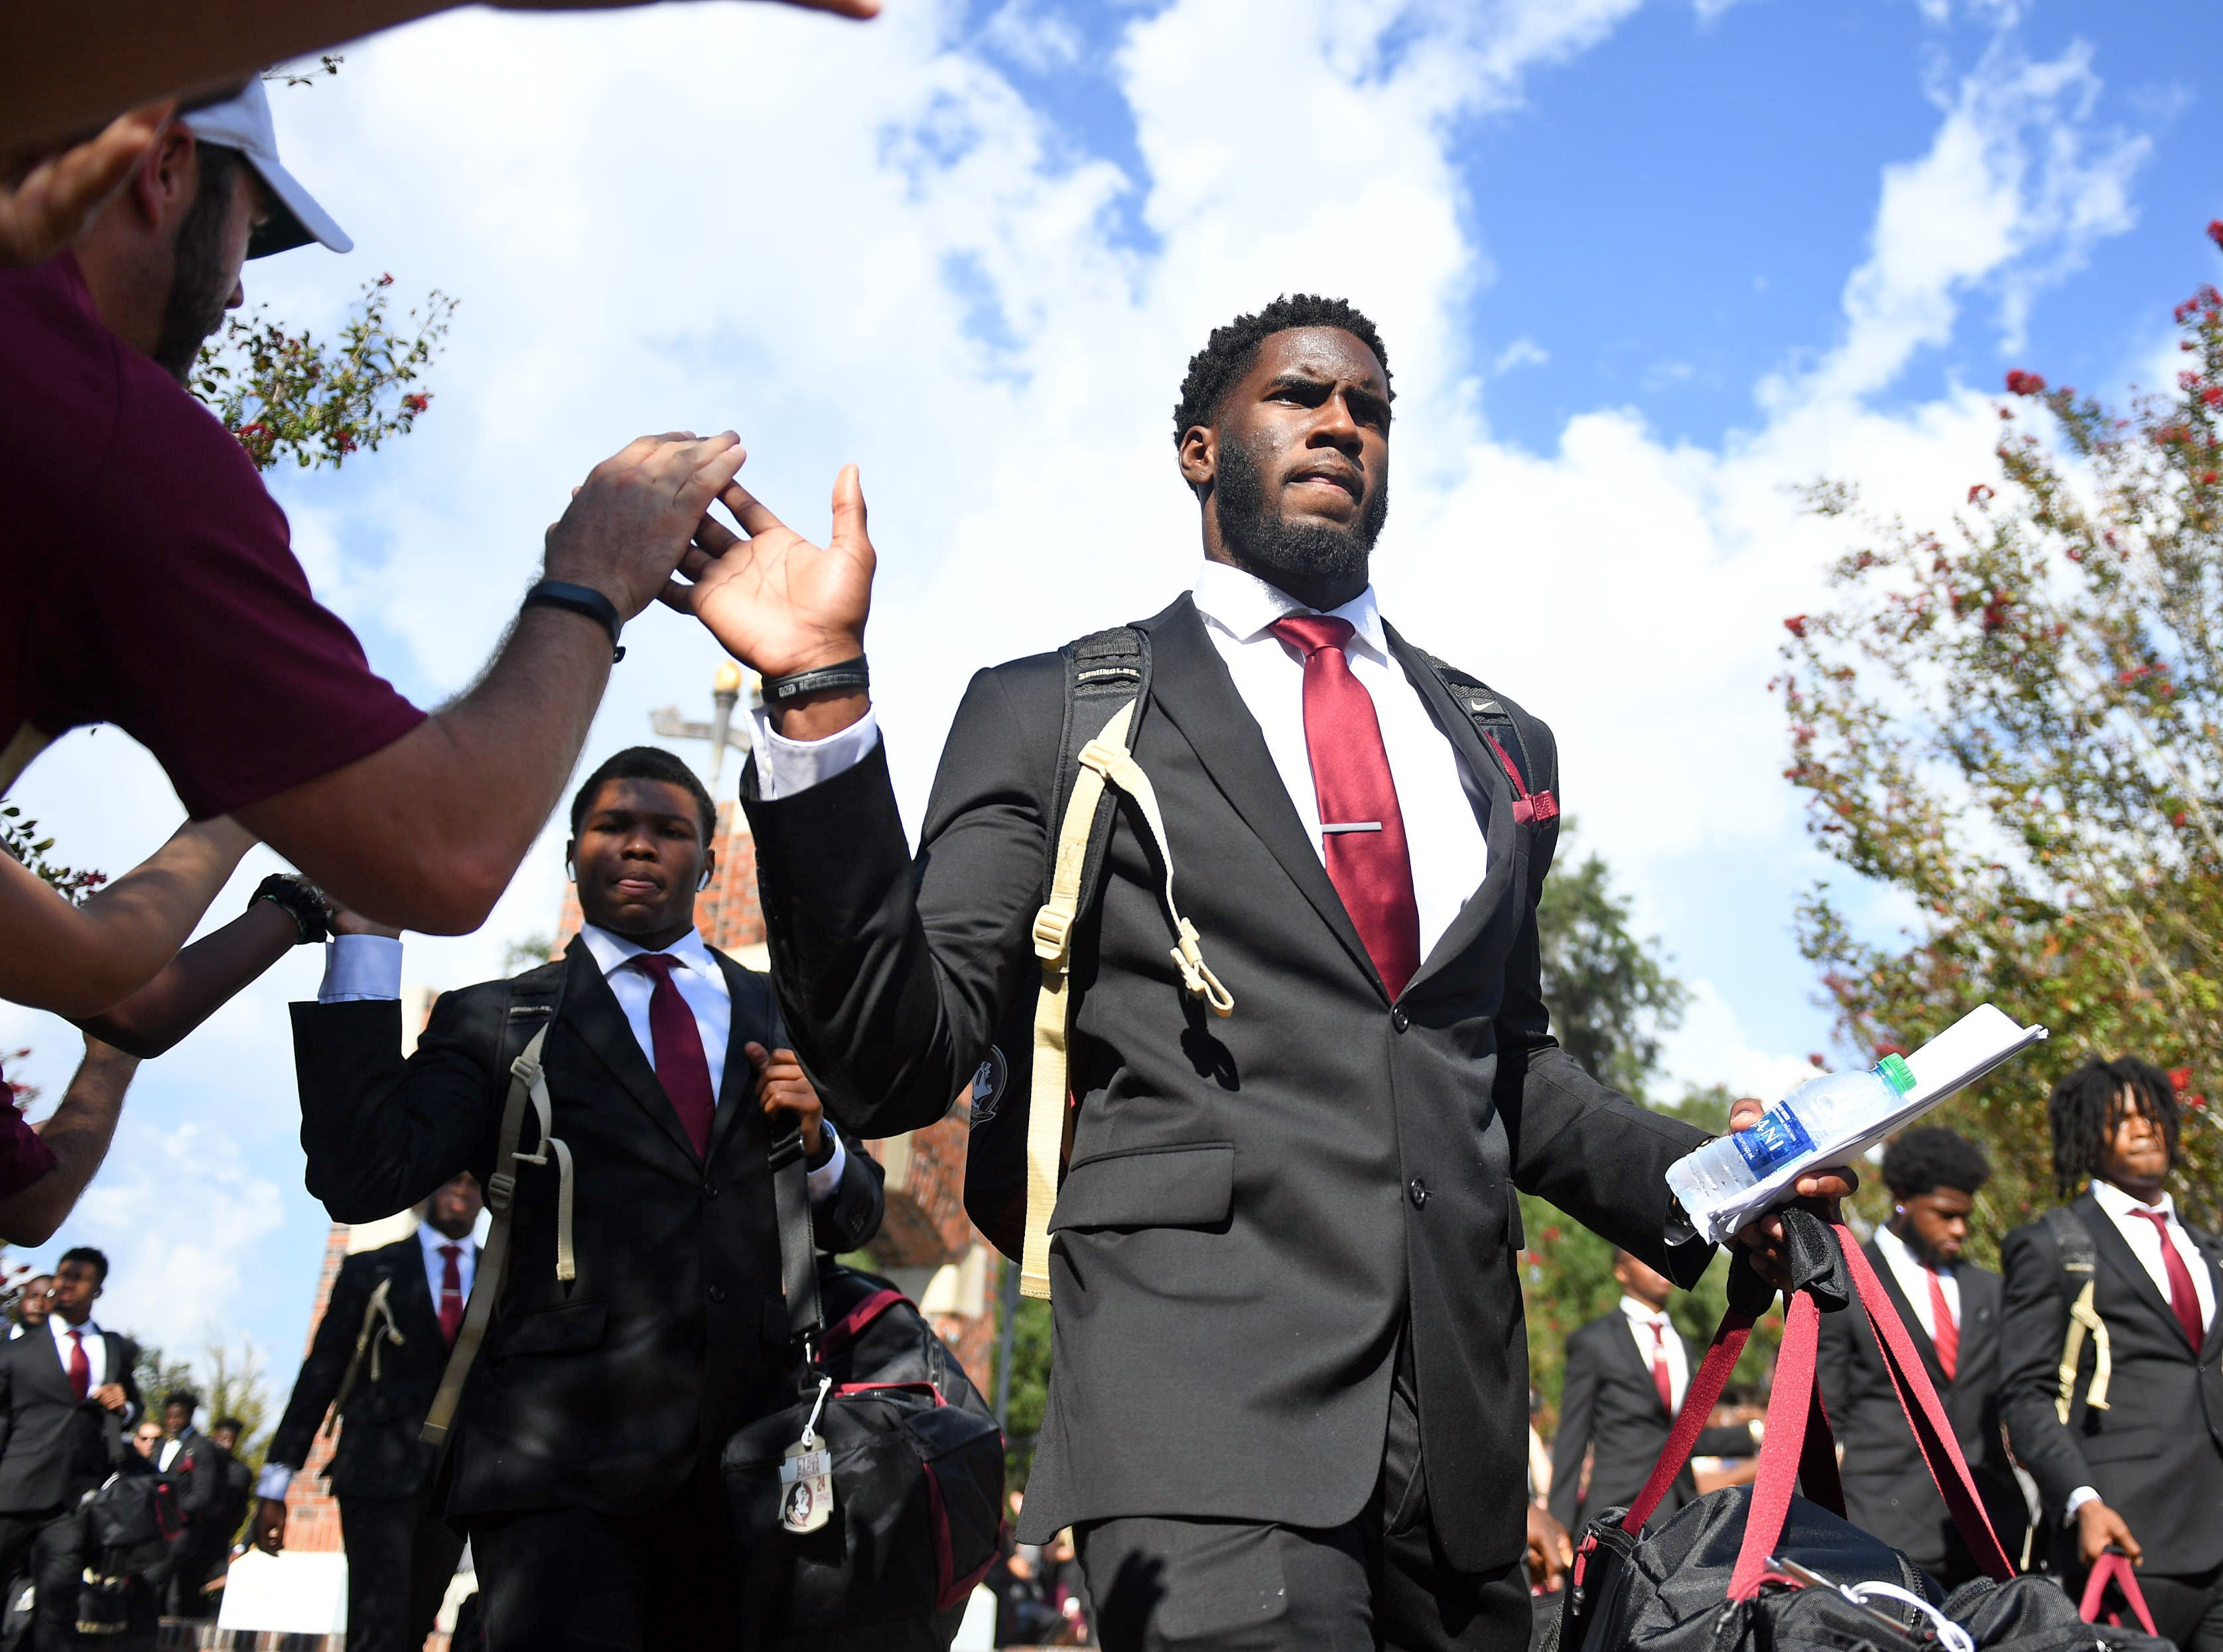 Florida State Seminoles defensive end Brian Burns (middle) enters the stadium prior to a game against the Samford Bulldogs at Doak Campbell Stadium.